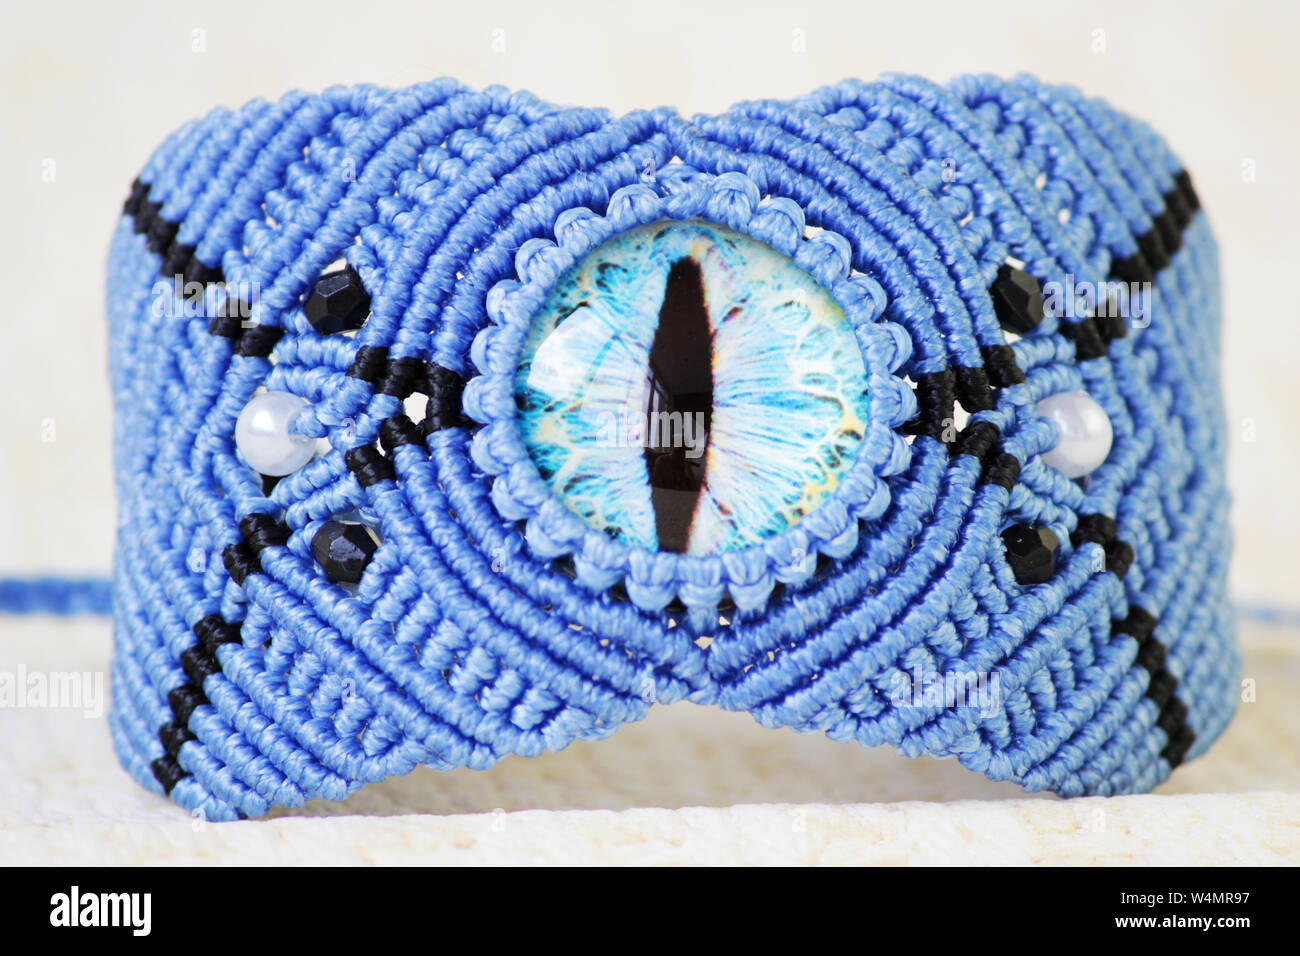 blue bracelete with white beads and the dragon's eye on the hand from waxed thread in the technique of macrame. Handmade Stock Photo